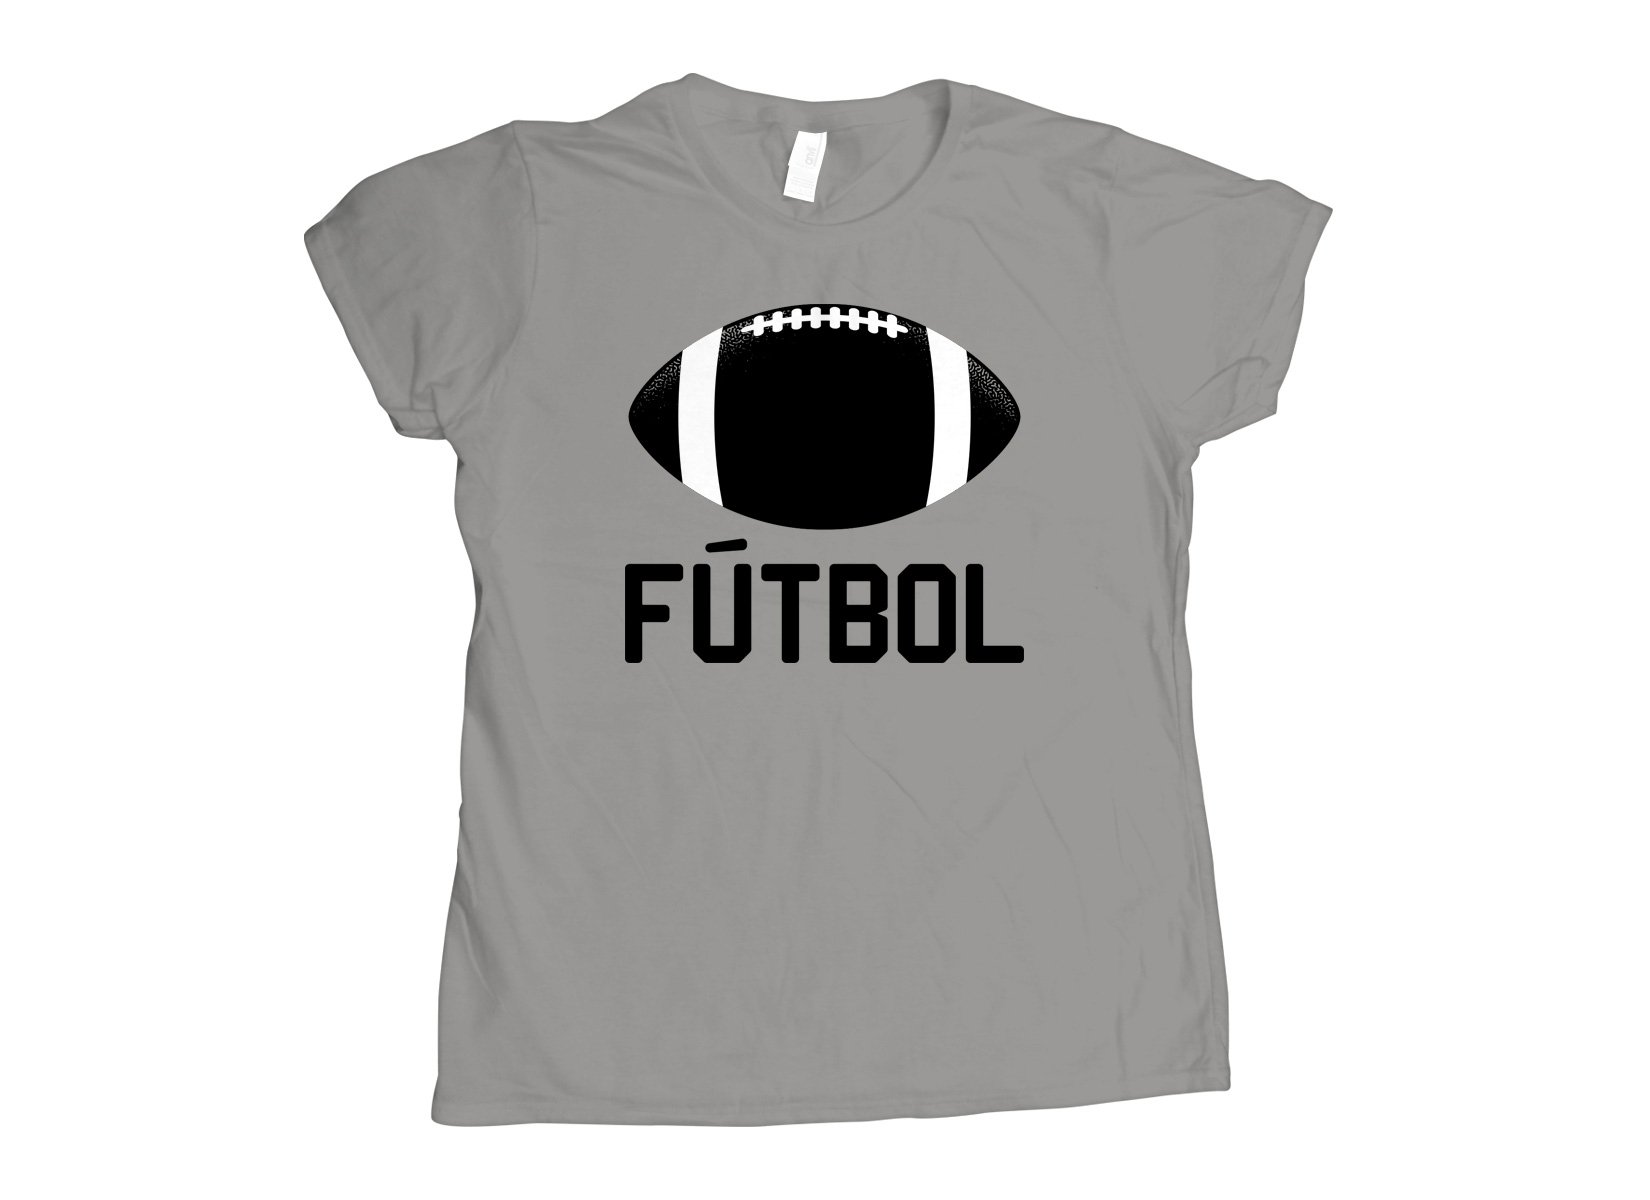 Futbol on Womens T-Shirt